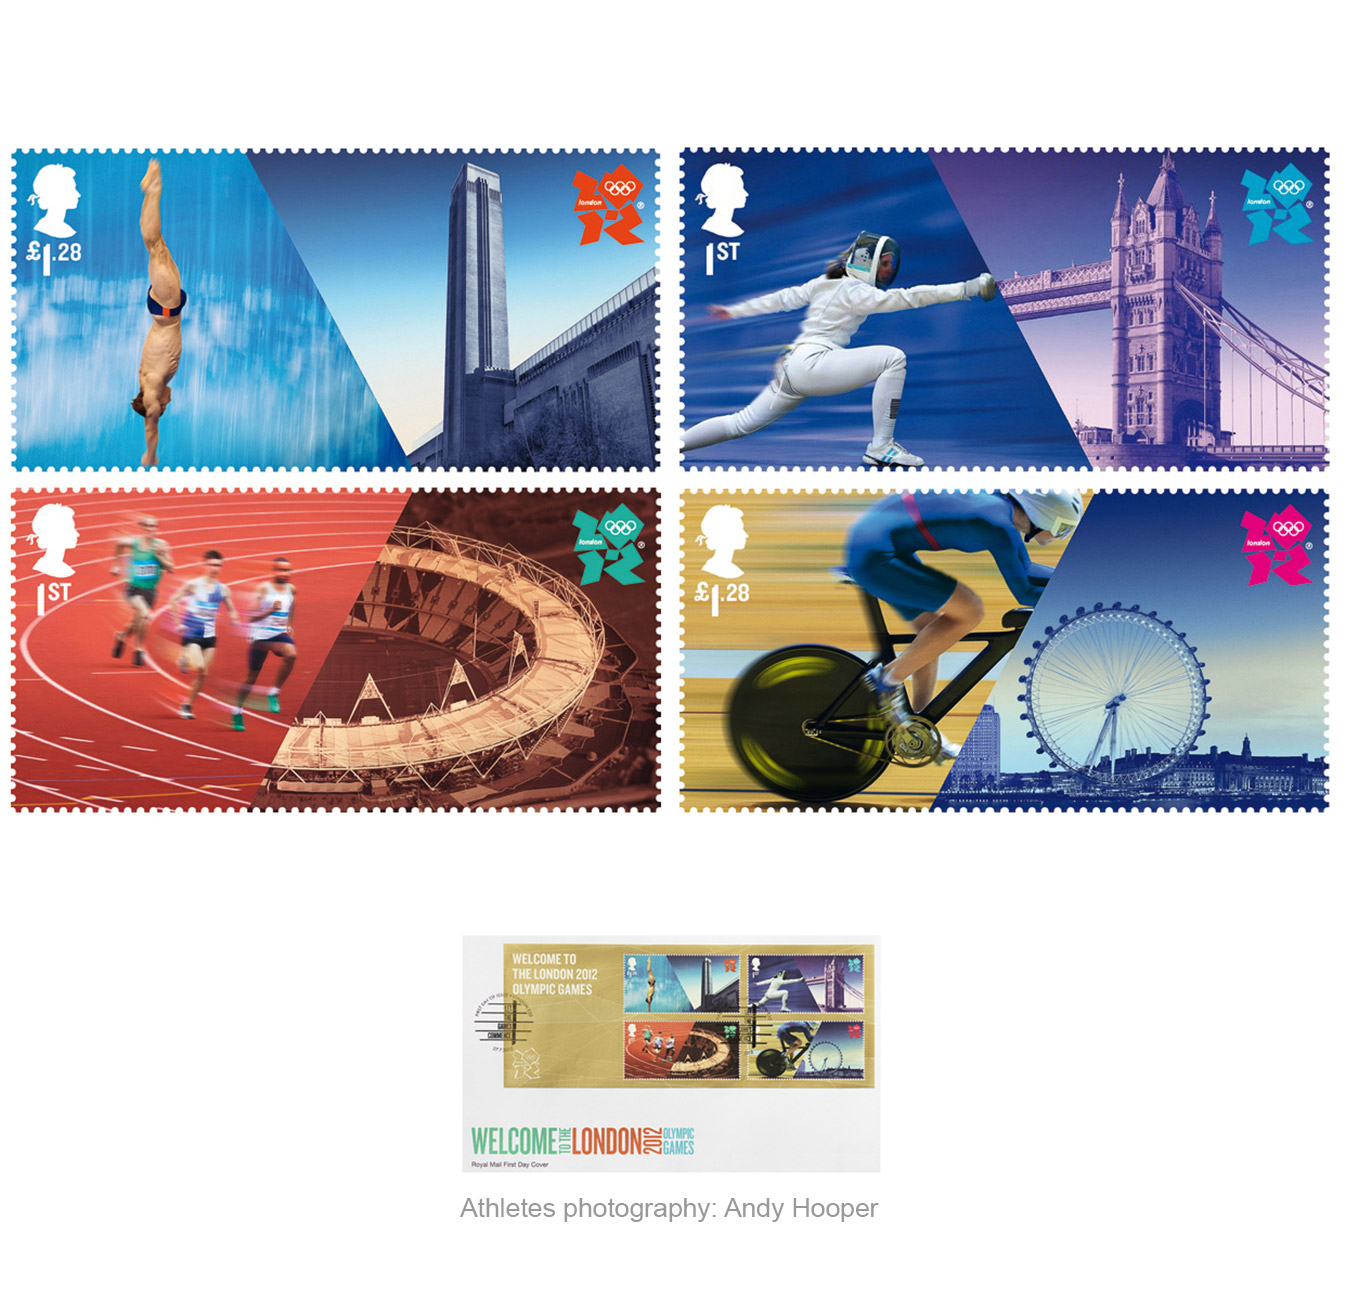 Paul Grundy. Royal Mail Olympic 2012 Stamps